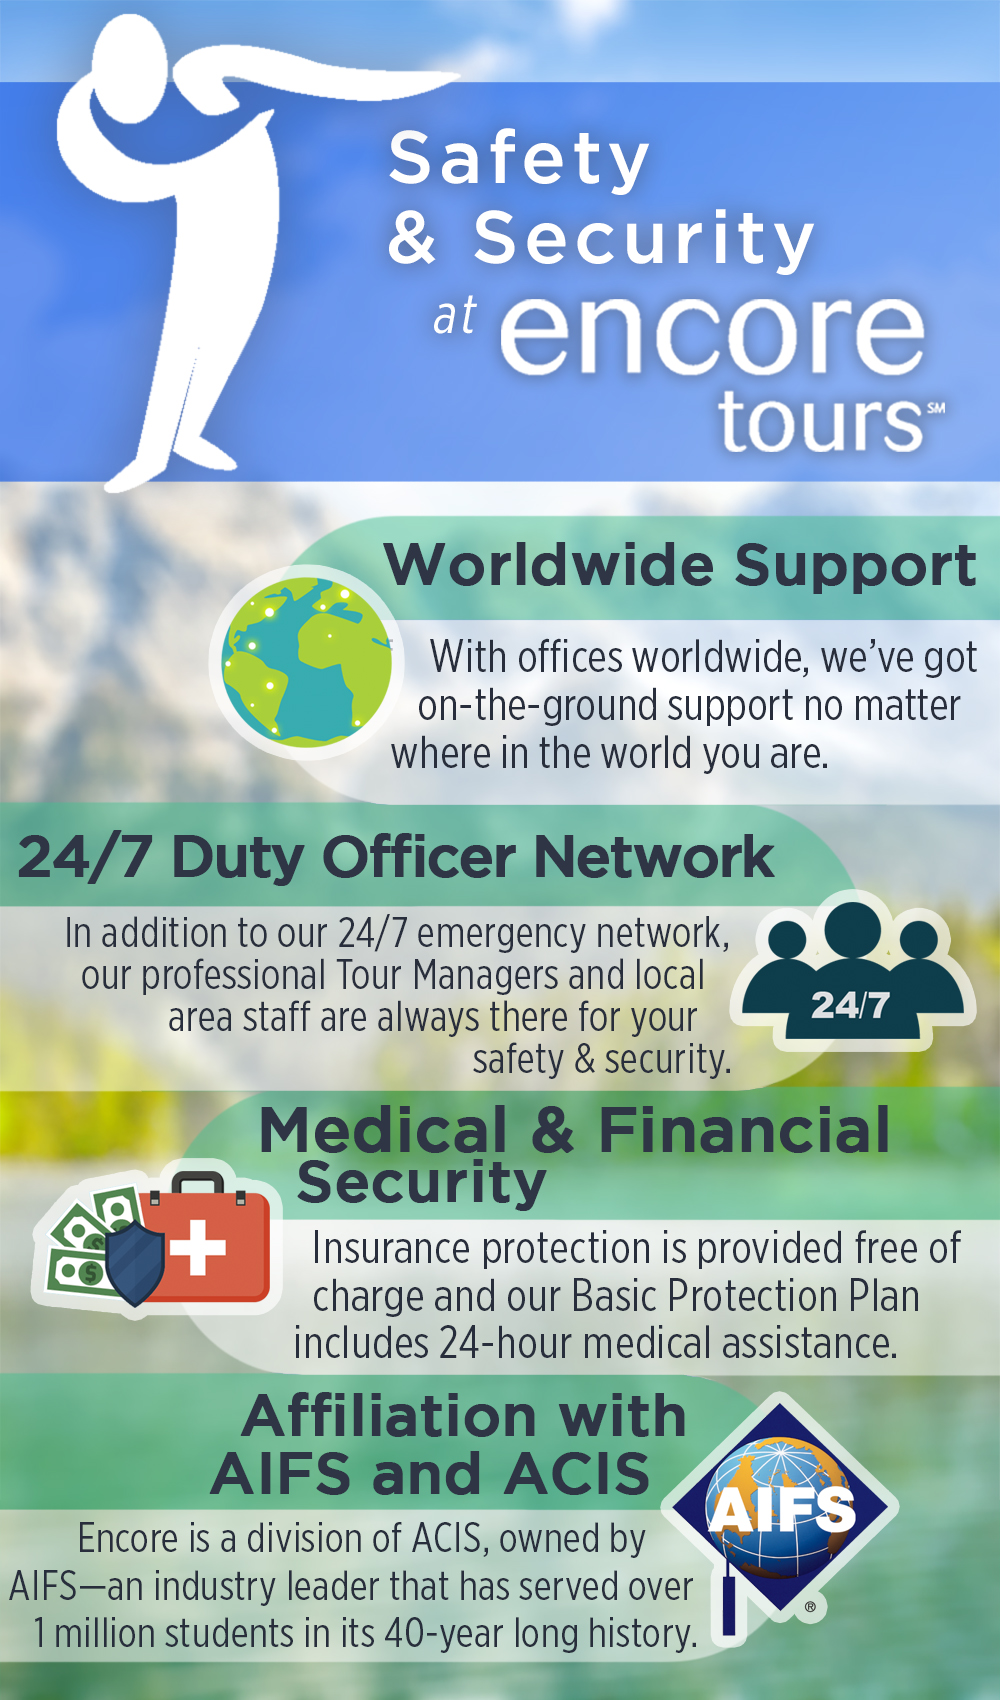 Worldwide support: With offices worldwide, we've got on-the-ground support no matter where in the world you are. | 24/7 Duty Officer Network: In addition to our 24/7 emergency network, our professional Tour Managers and local area staff are always there for your safety & security. | Medical & Financial Security: Insurance protection is provided free of charge and our Basic Protection Plan includes 24-hour medical assistance. | Affiliation with AIFS and ACIS: Encore is a division of ACIS, owned by AIFS—an industry leader that has served over 1 million students in its 40-year long history.